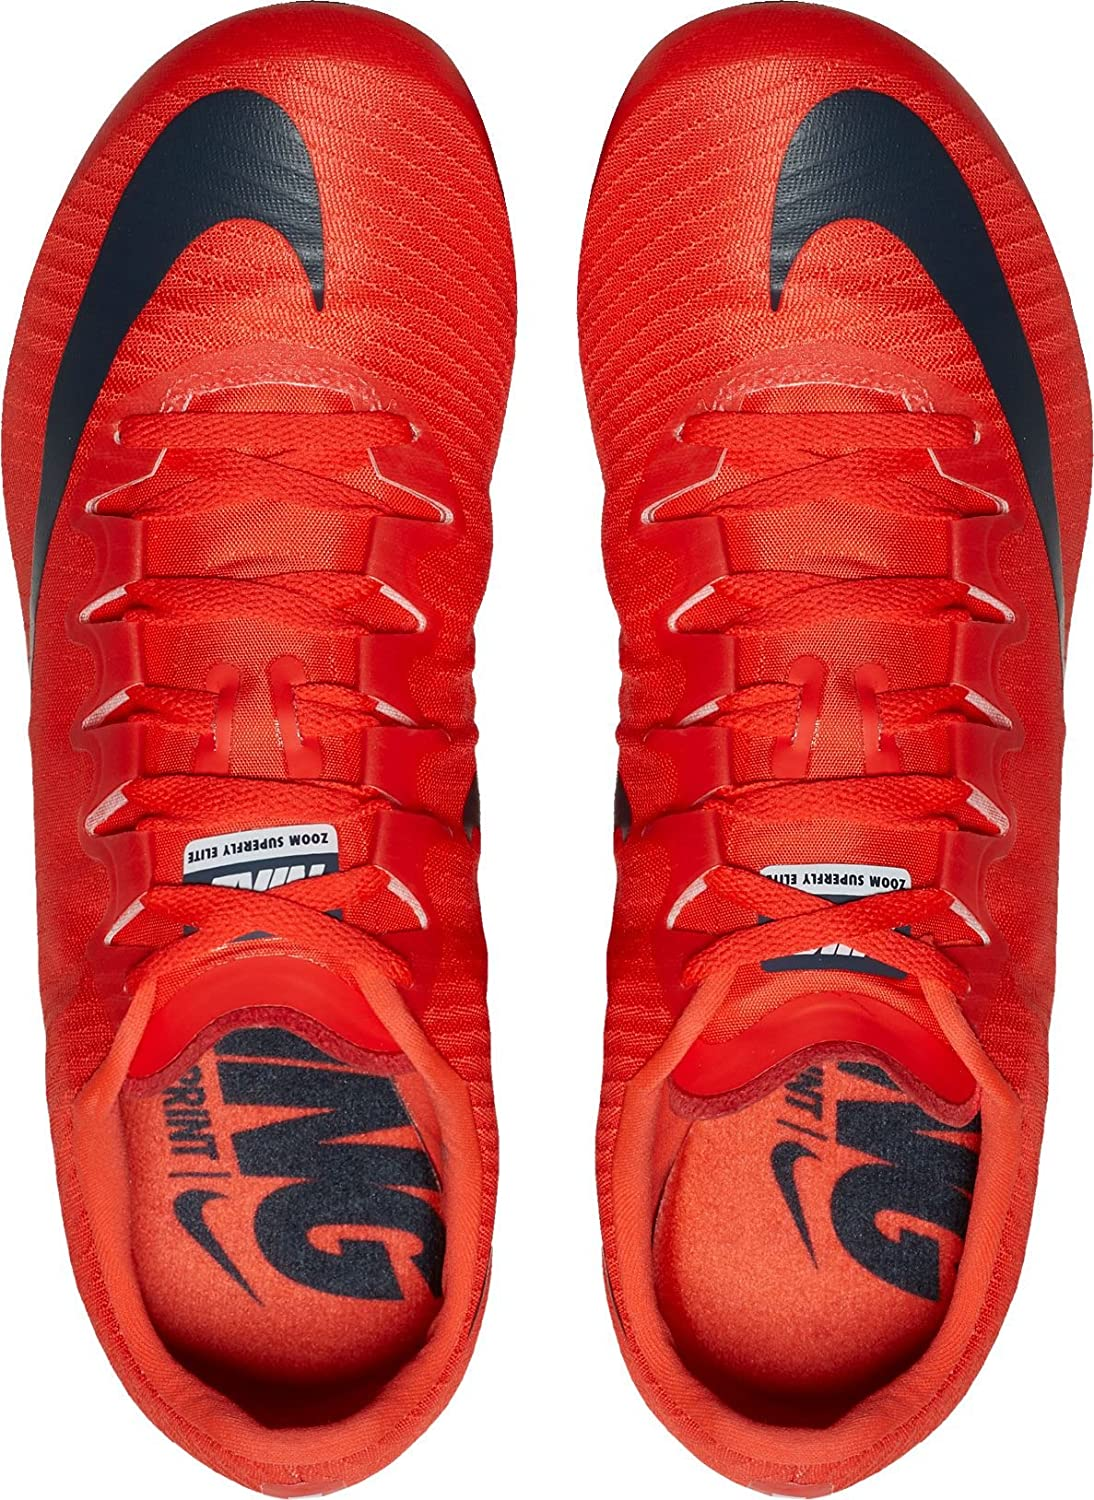 3289ef9ce2ff Amazon.com  Nike Men s Zoom Superfly Elite Track and Field Shoes US  Shoes